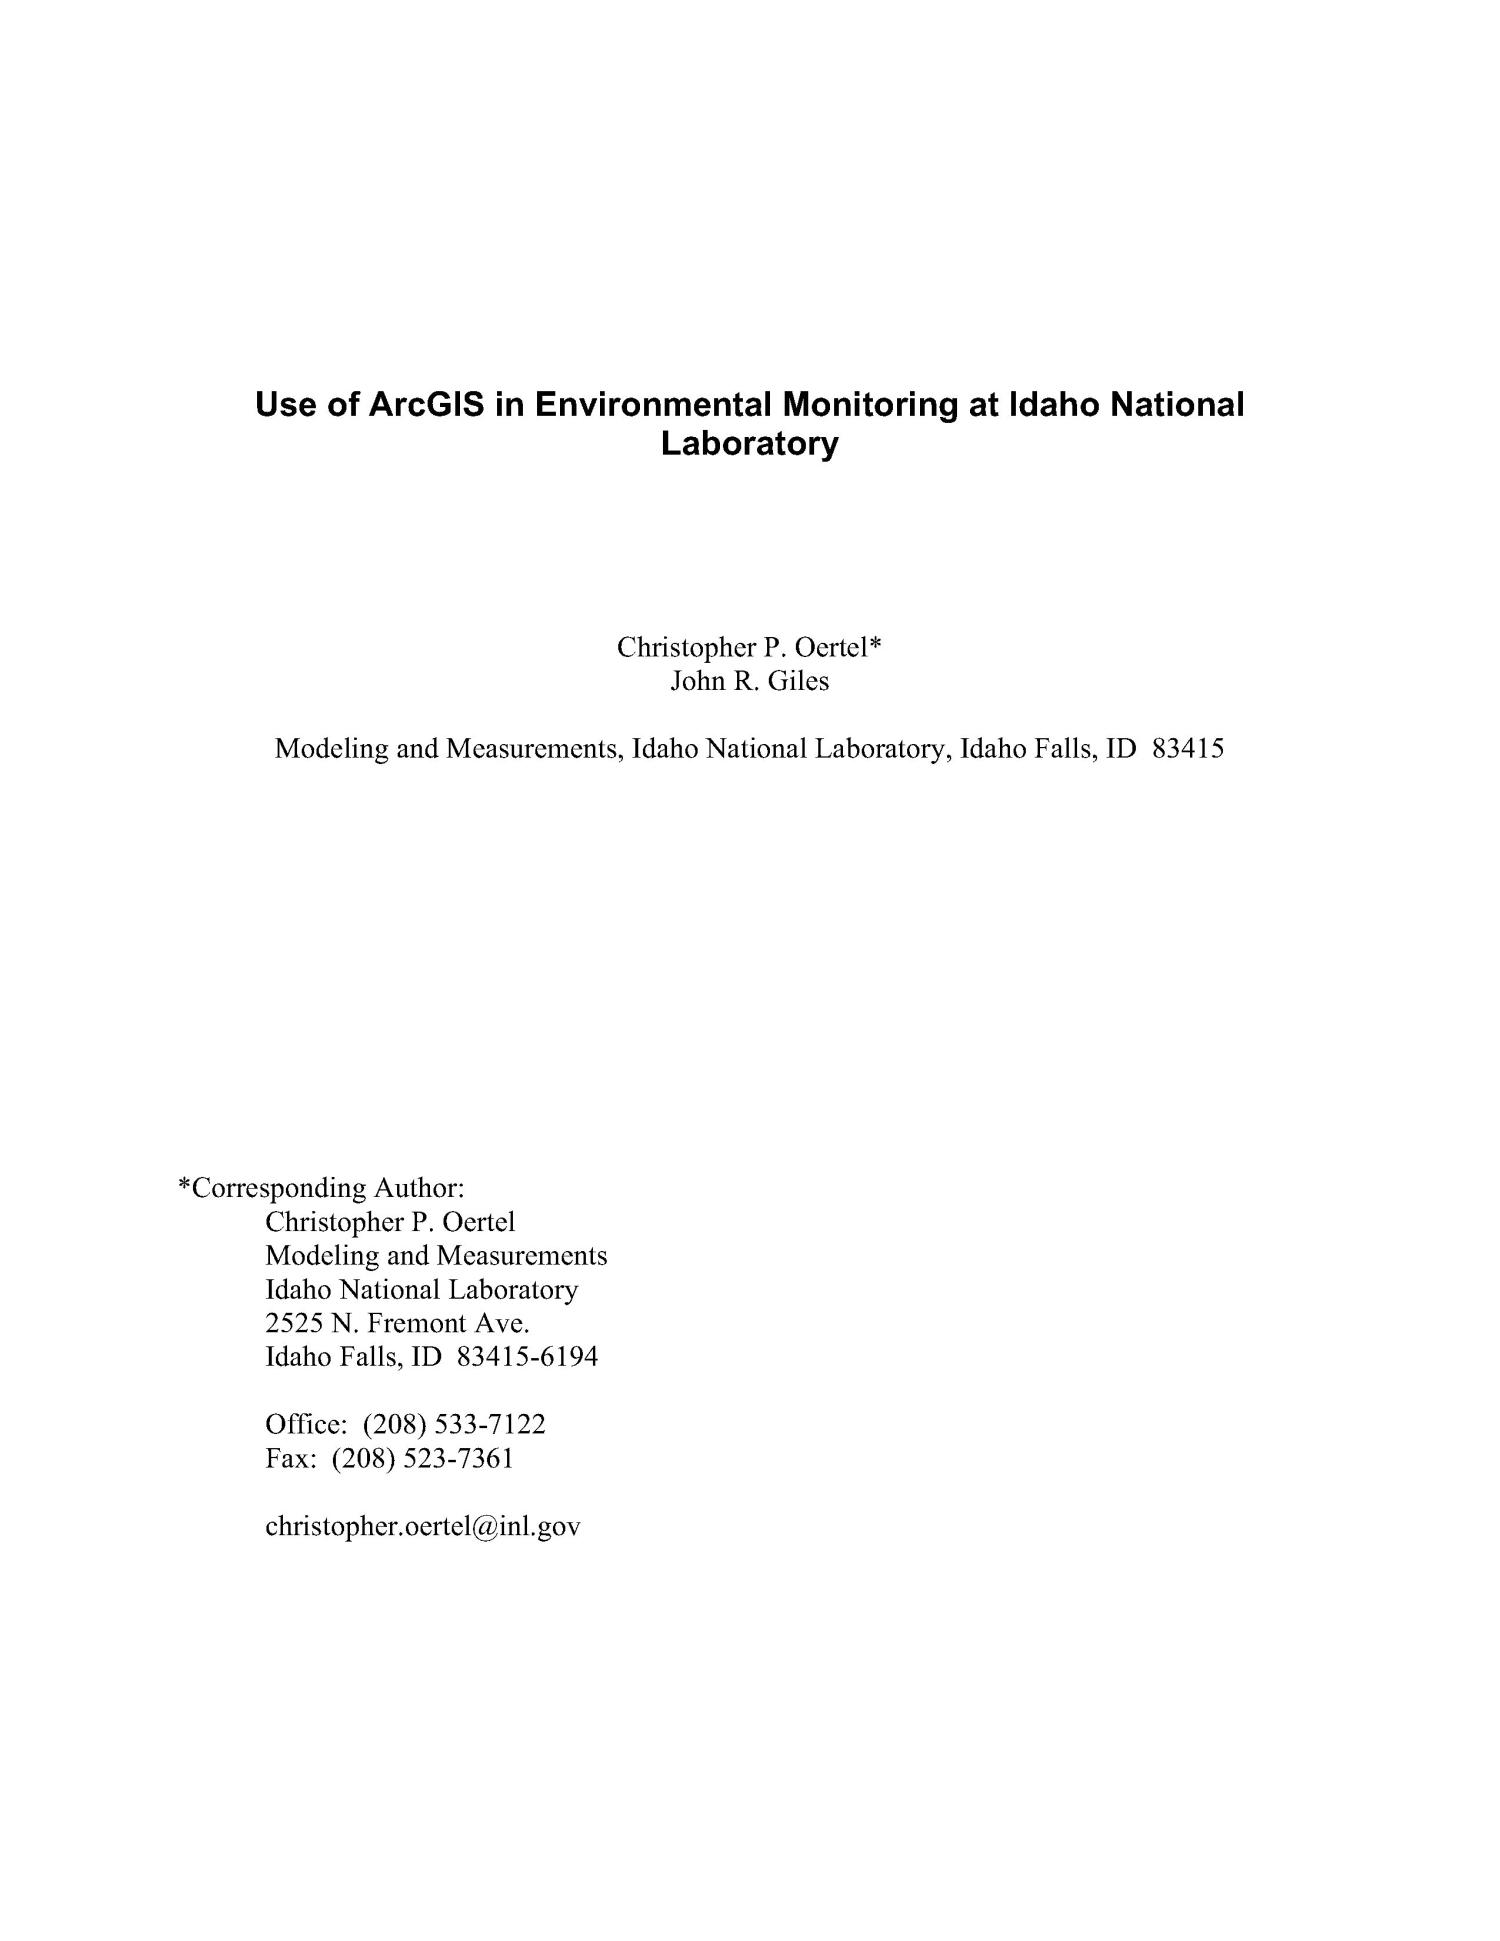 Use of ArcGIS in Environmental Monitoring at Idaho National Laboratory                                                                                                      [Sequence #]: 2 of 18